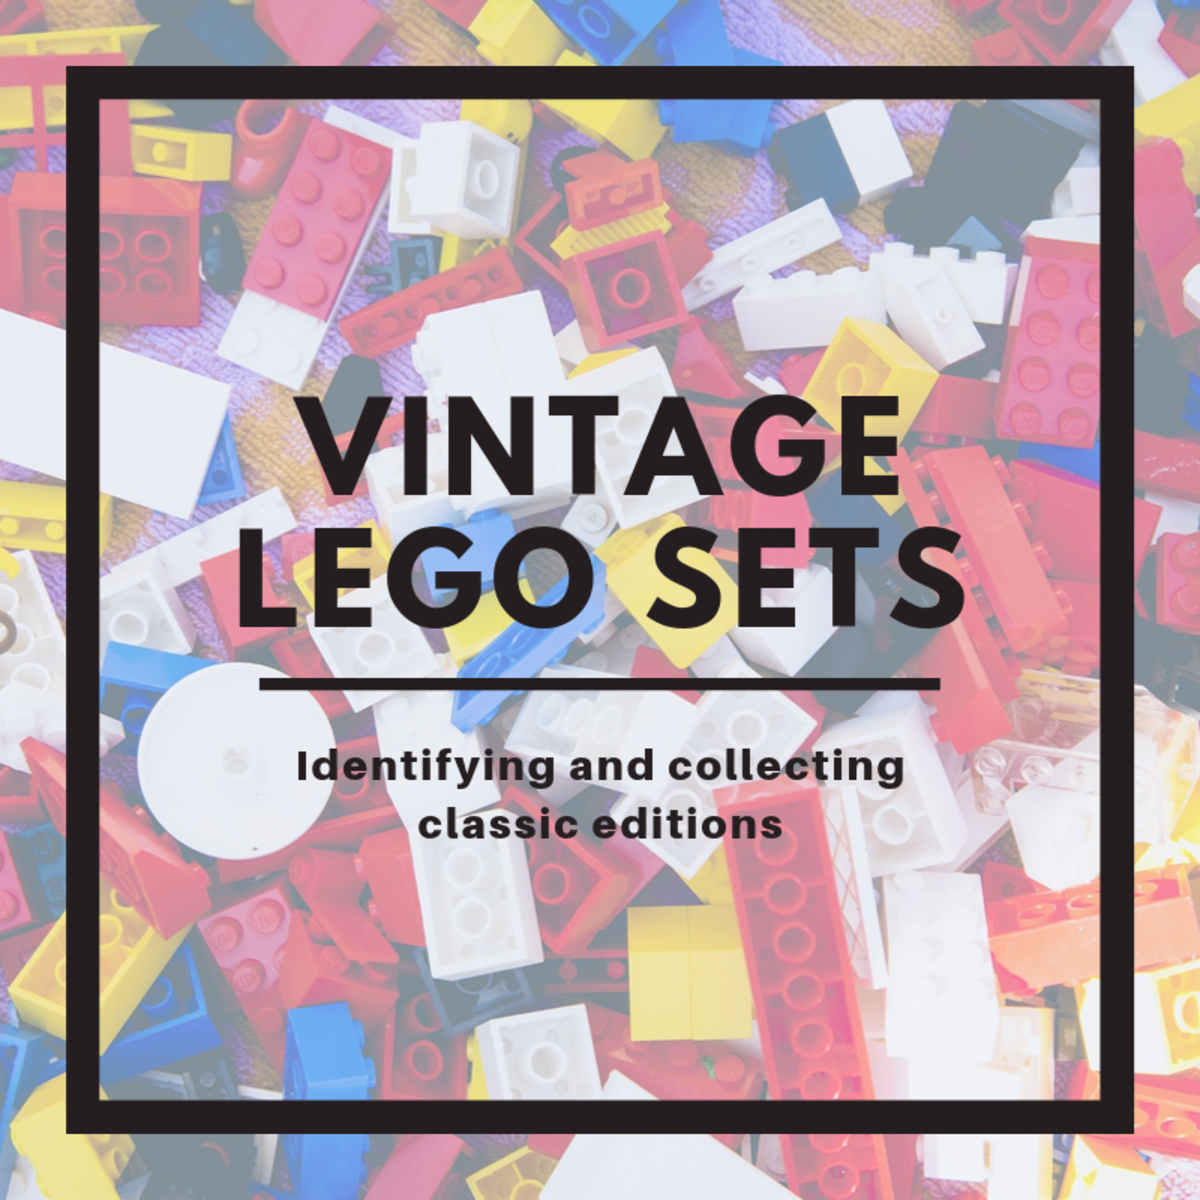 Vintage Lego Sets: How to Identify and Collect Classic Lego Bricks